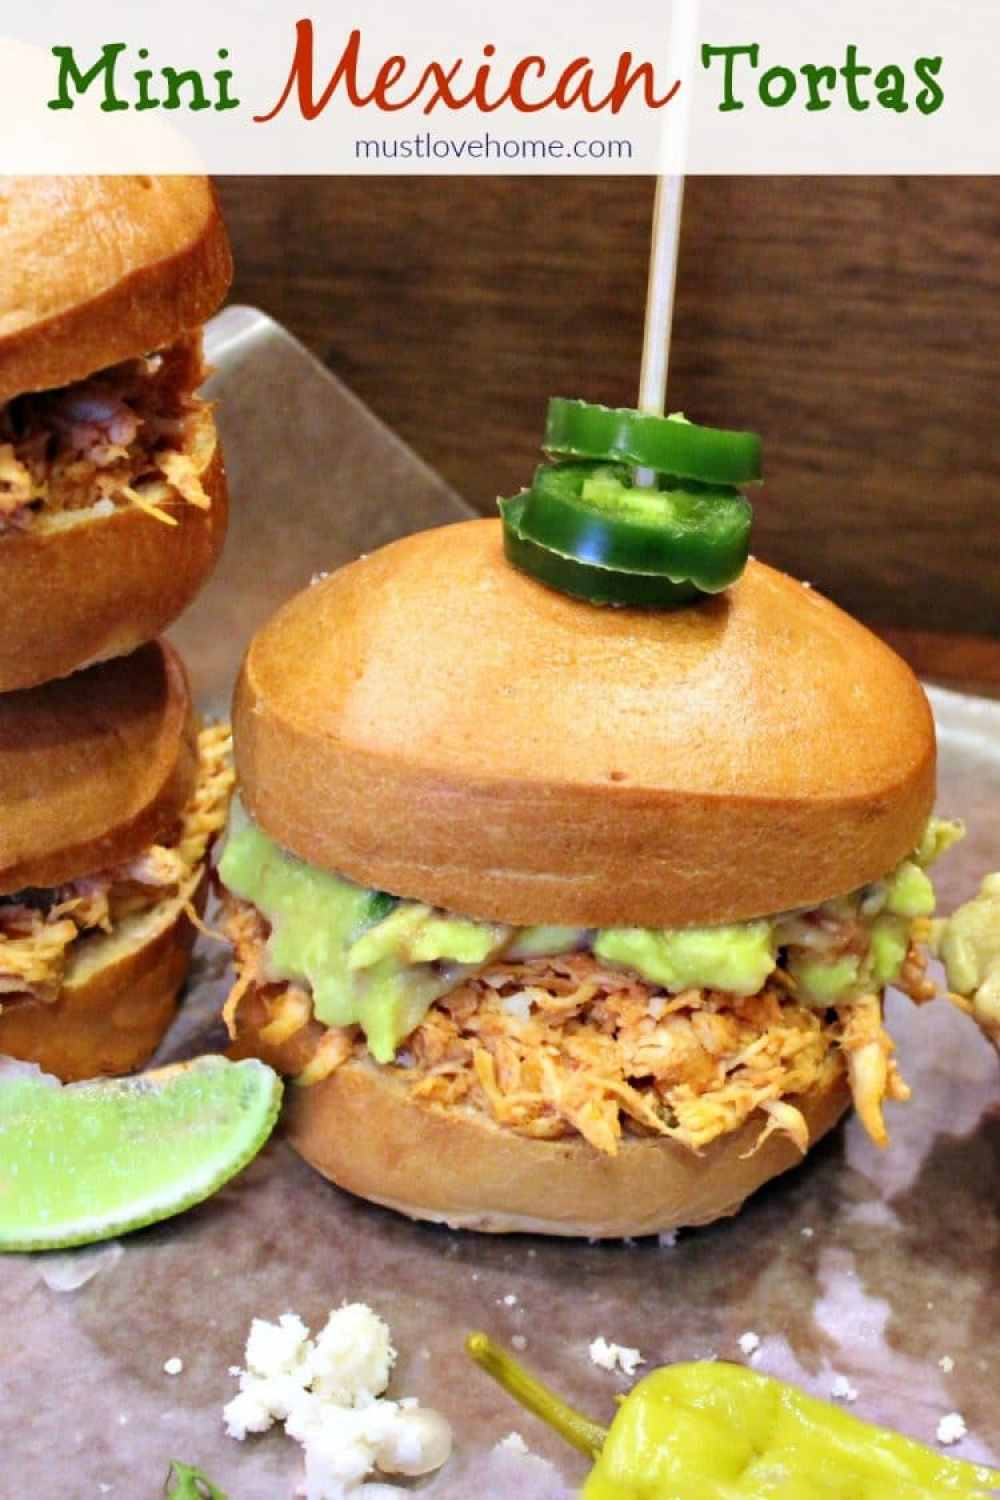 sandwiches filled with spicy chicken, guacamole and Queso Fresco ...